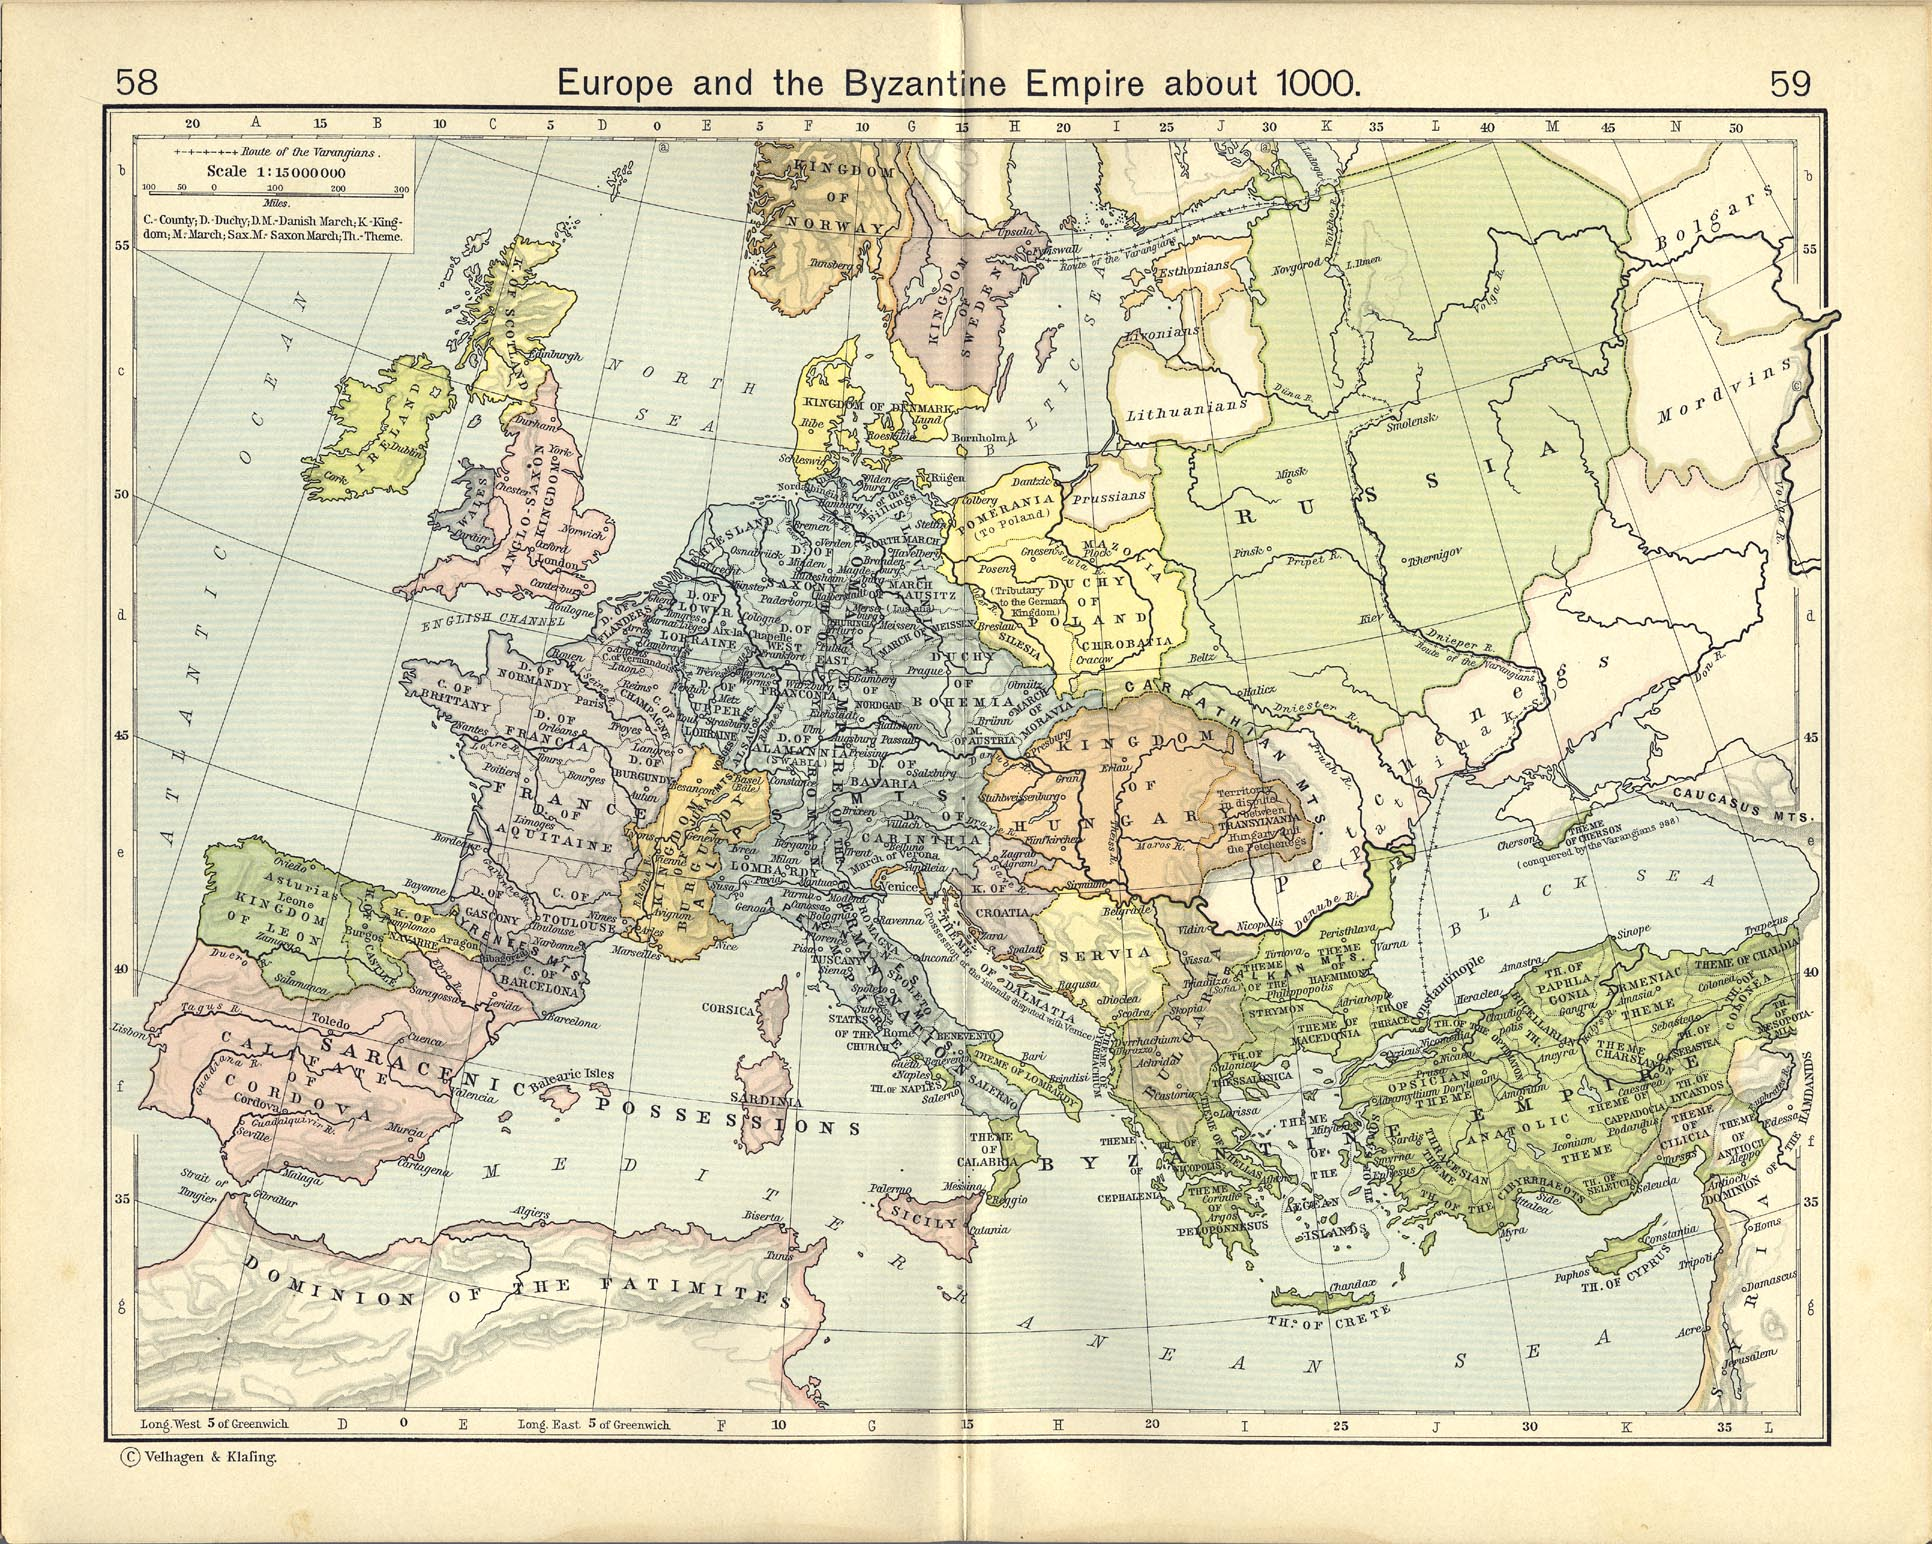 Europe and the Byzantine Empire about 1000